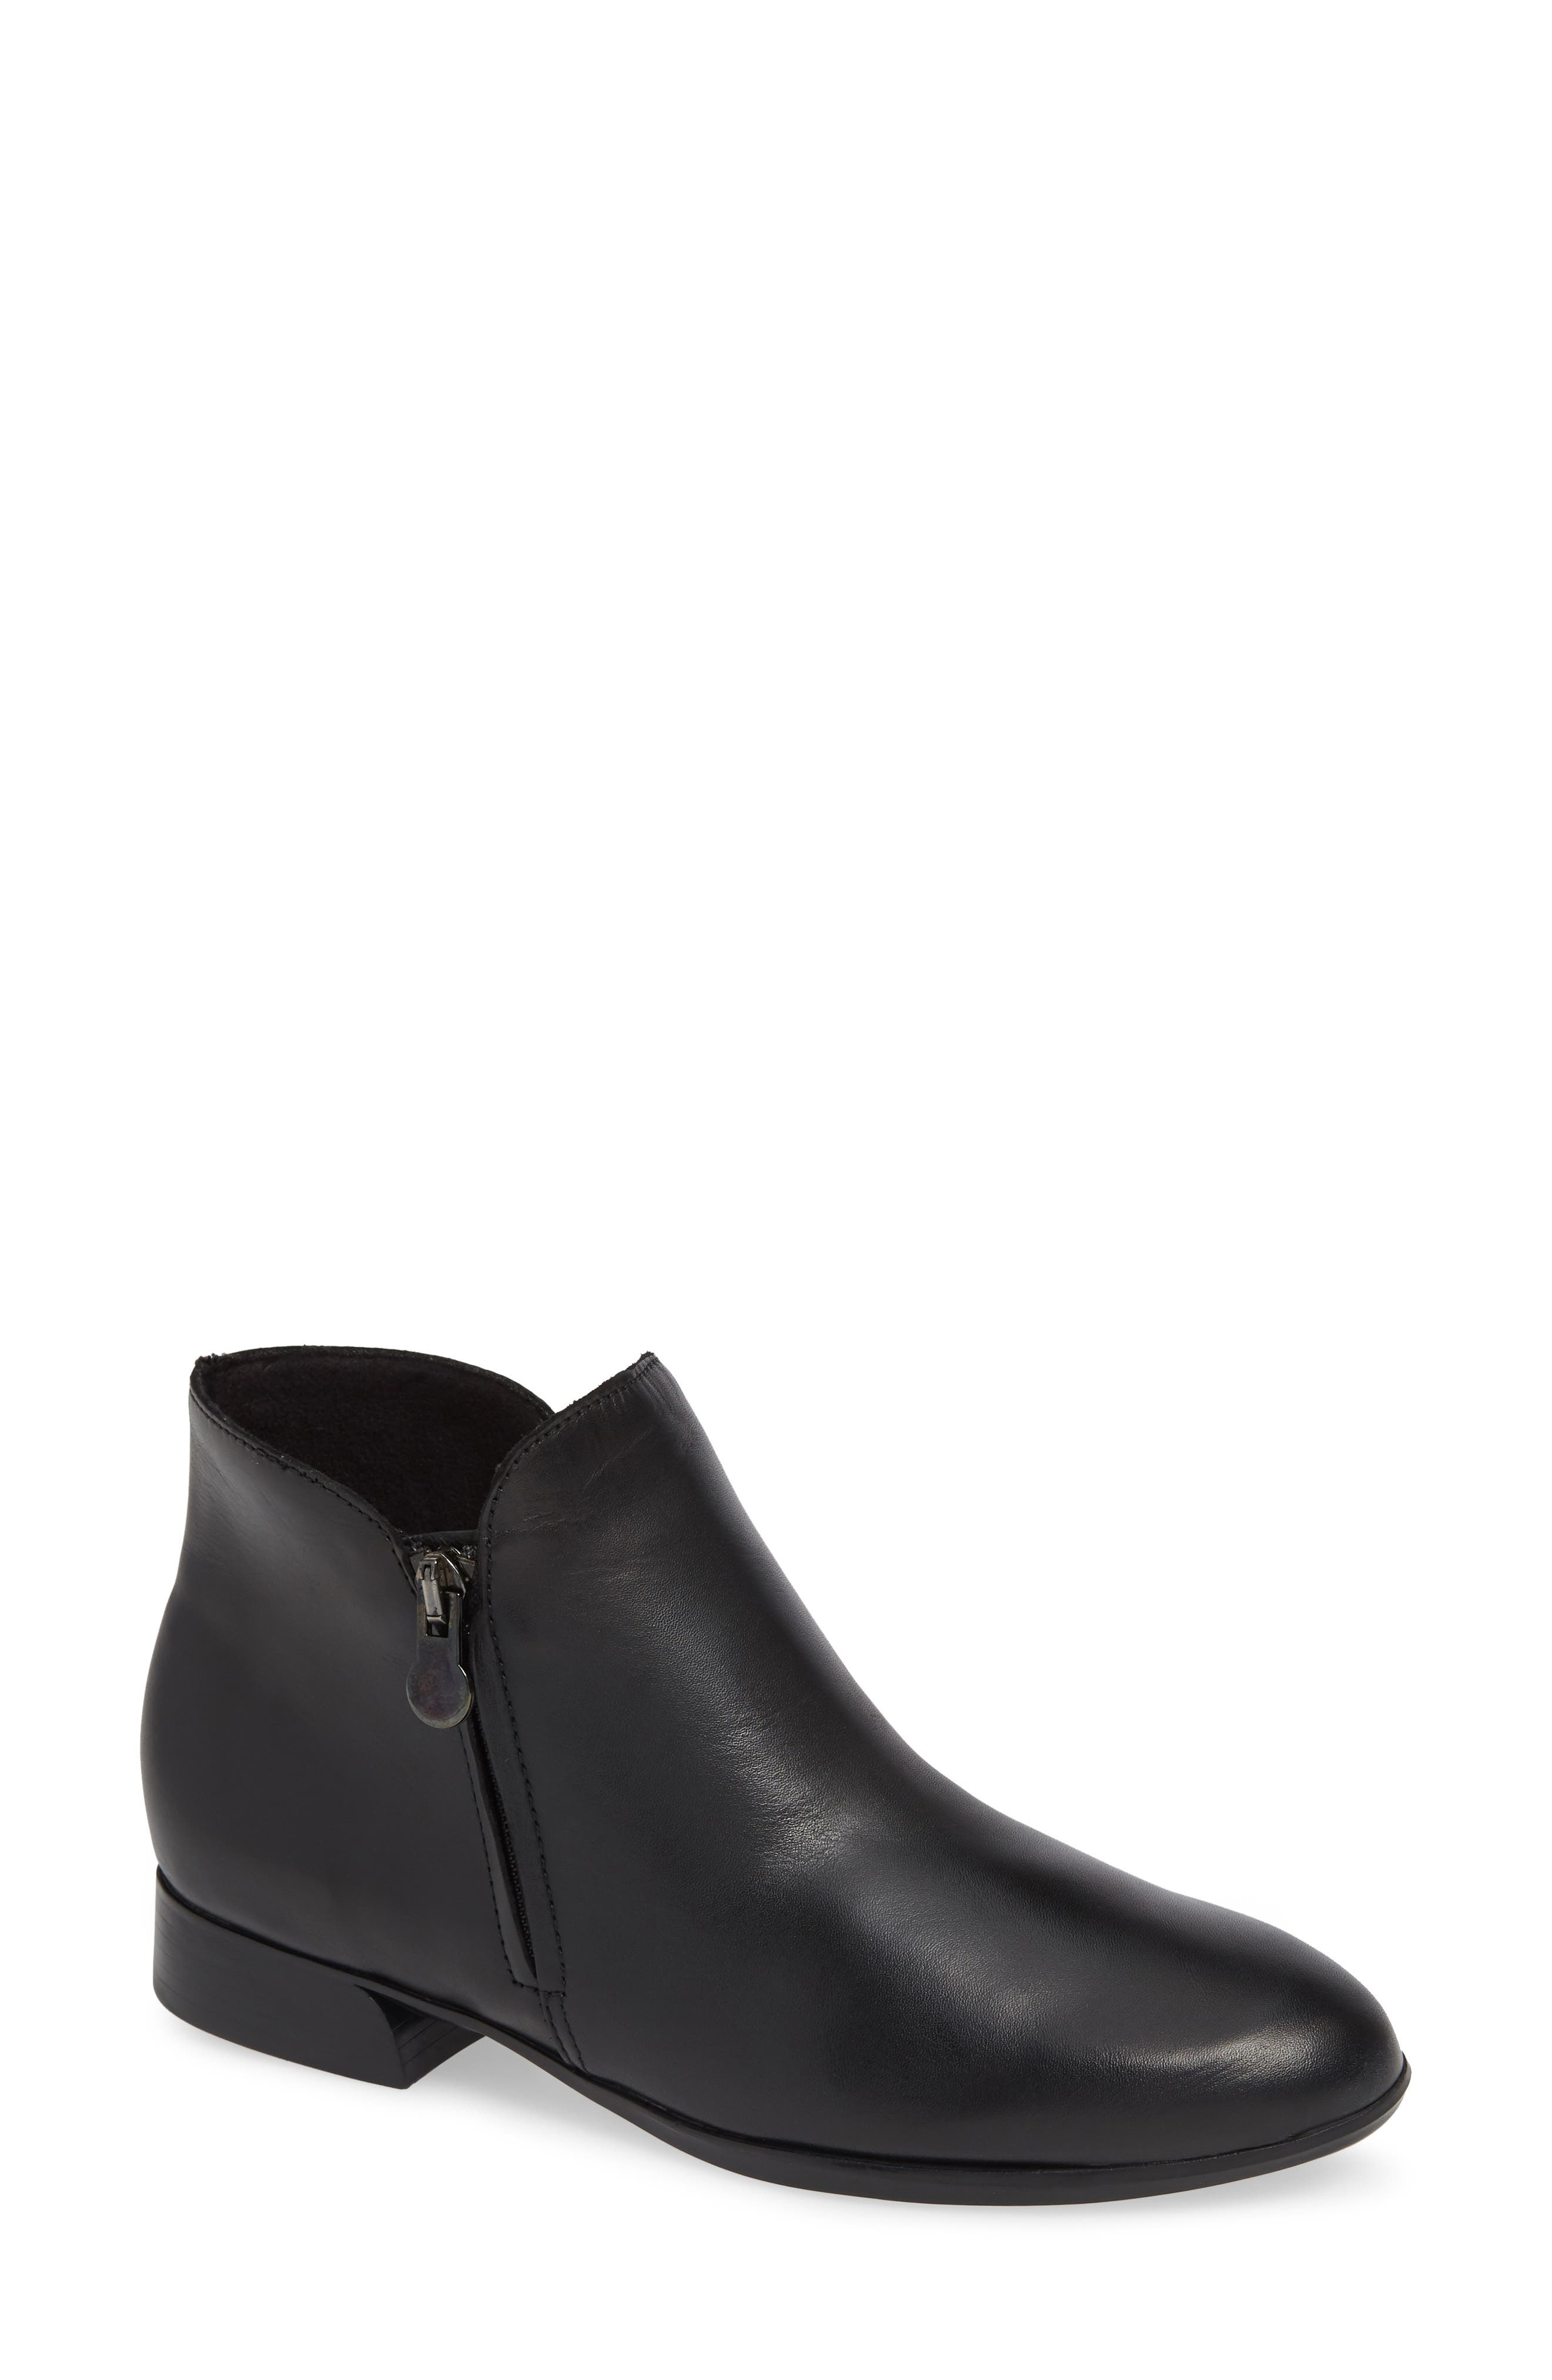 Averee Bootie,                         Main,                         color, BLACK LEATHER